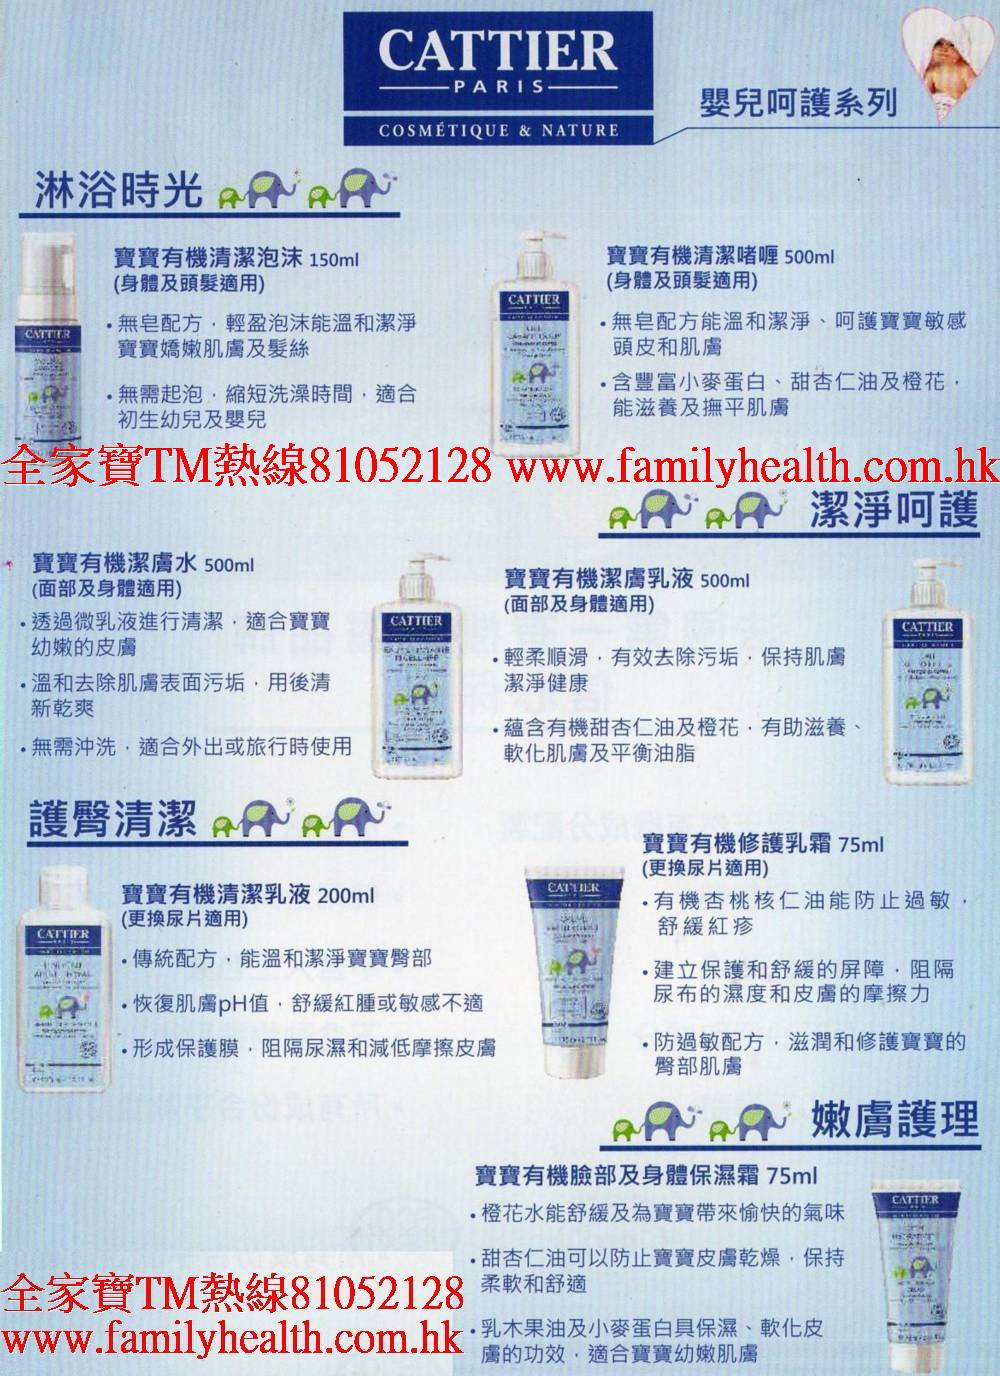 http://www.familyhealth.com.hk/files/full/902_4.jpg